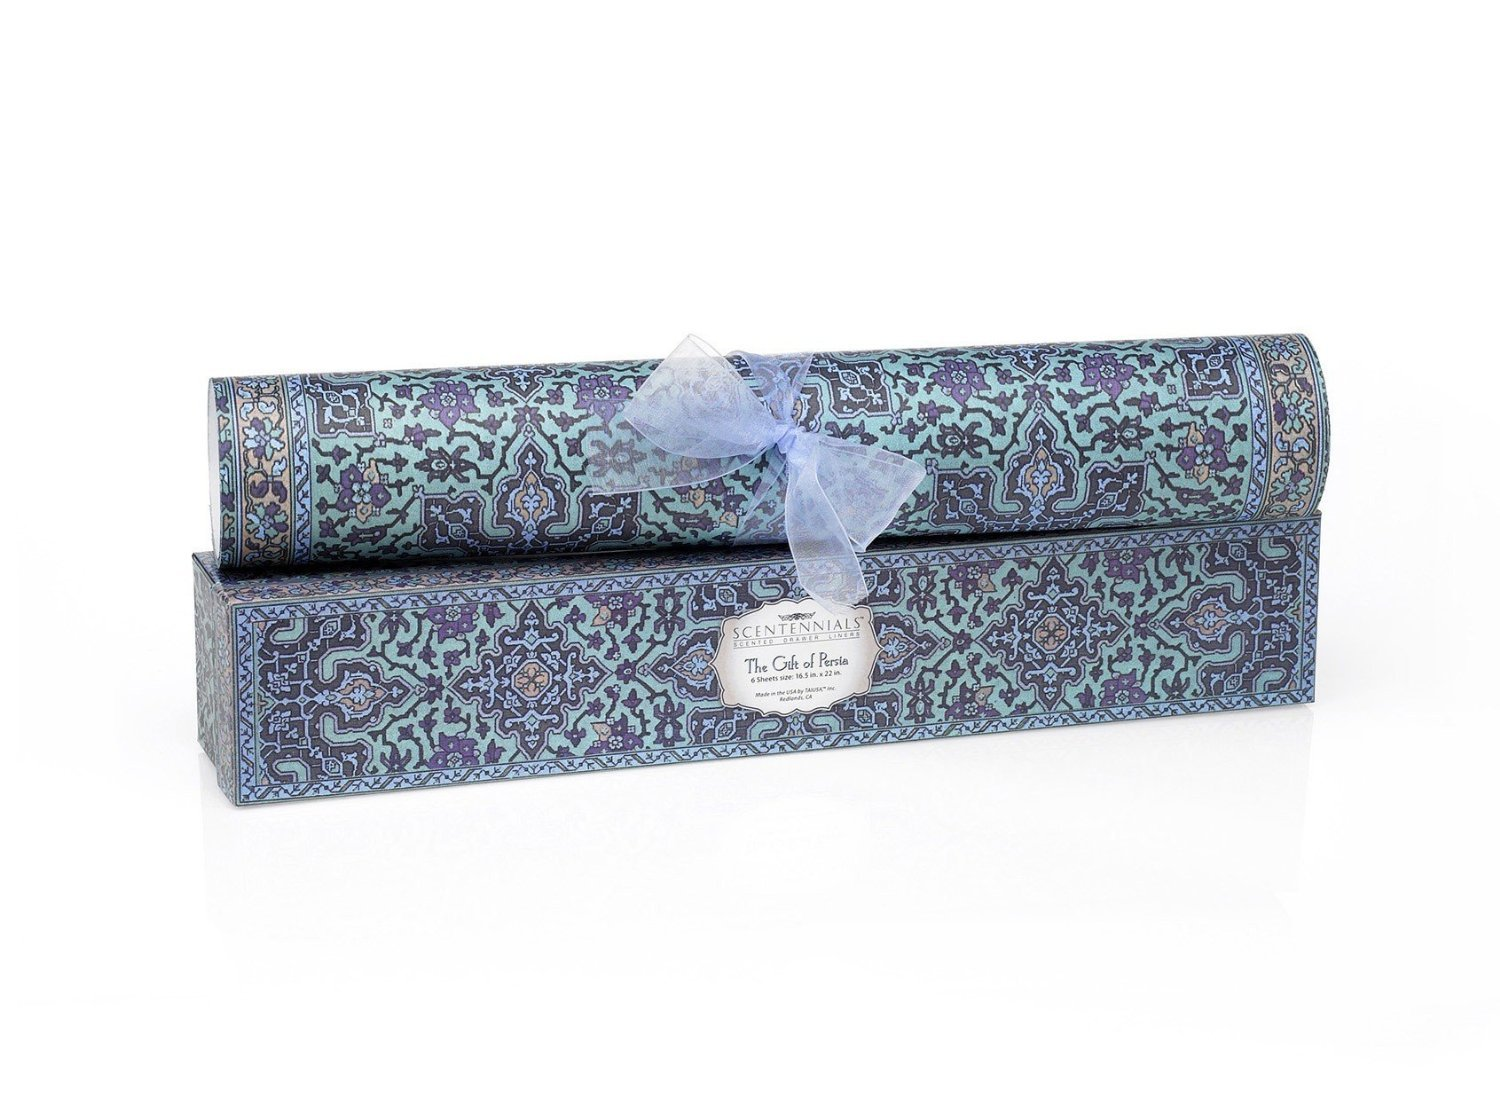 Scentennials GIFT OF PERSIA (6 SHEETS) Scented Fragrant Shelf & Drawer Liners 16.5'' x 22'' - Great for Dresser, Kitchen, Bathroom, Vanity & Linen Closet